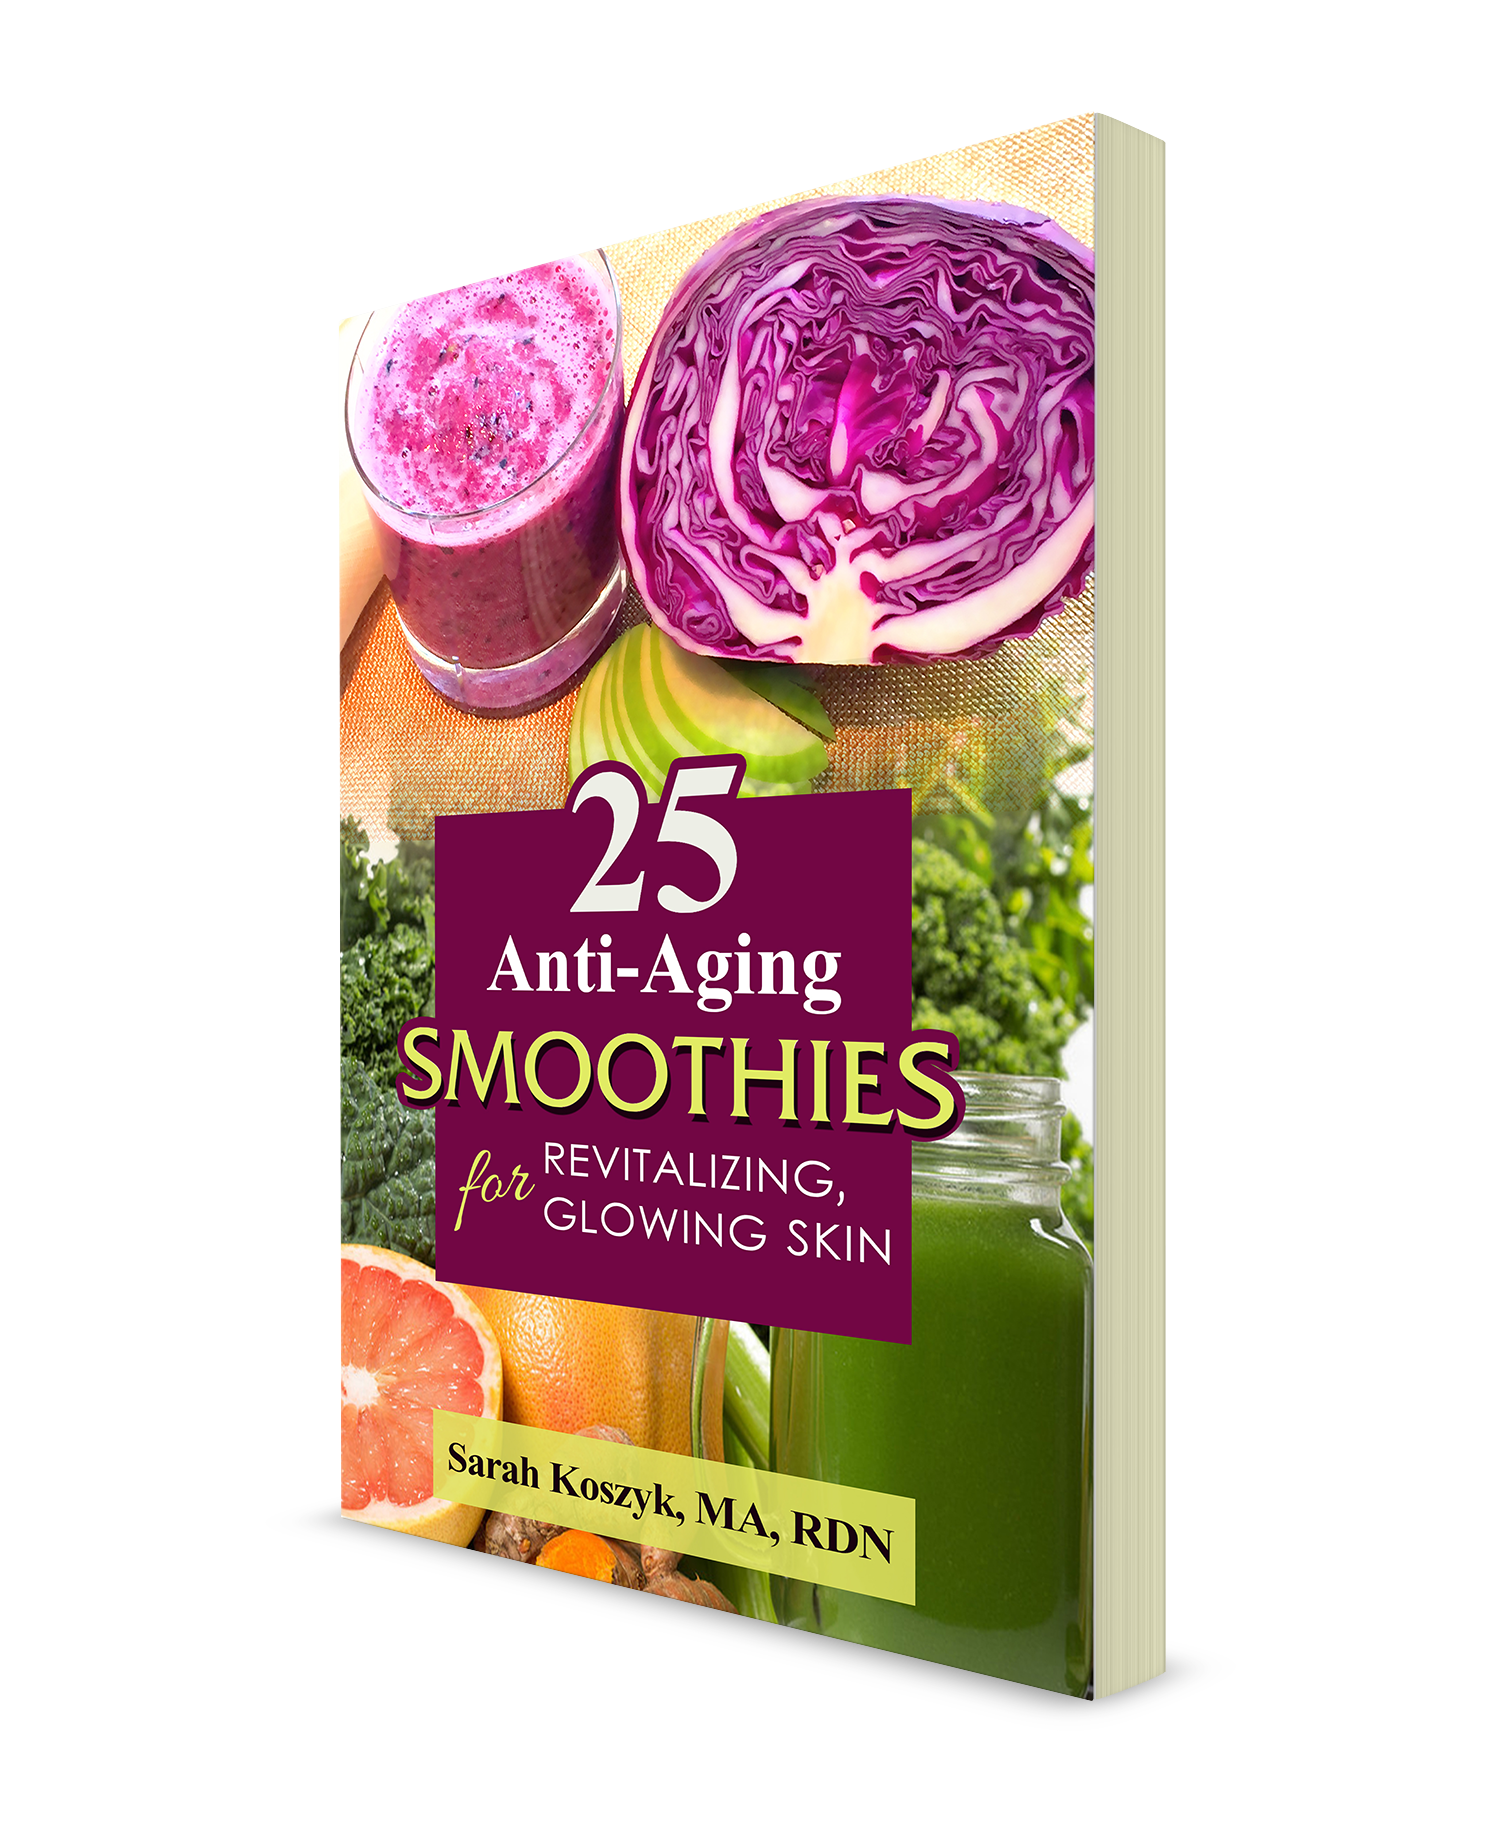 25 Anti-Aging Smoothies for Revitalizing, Glowing Skin